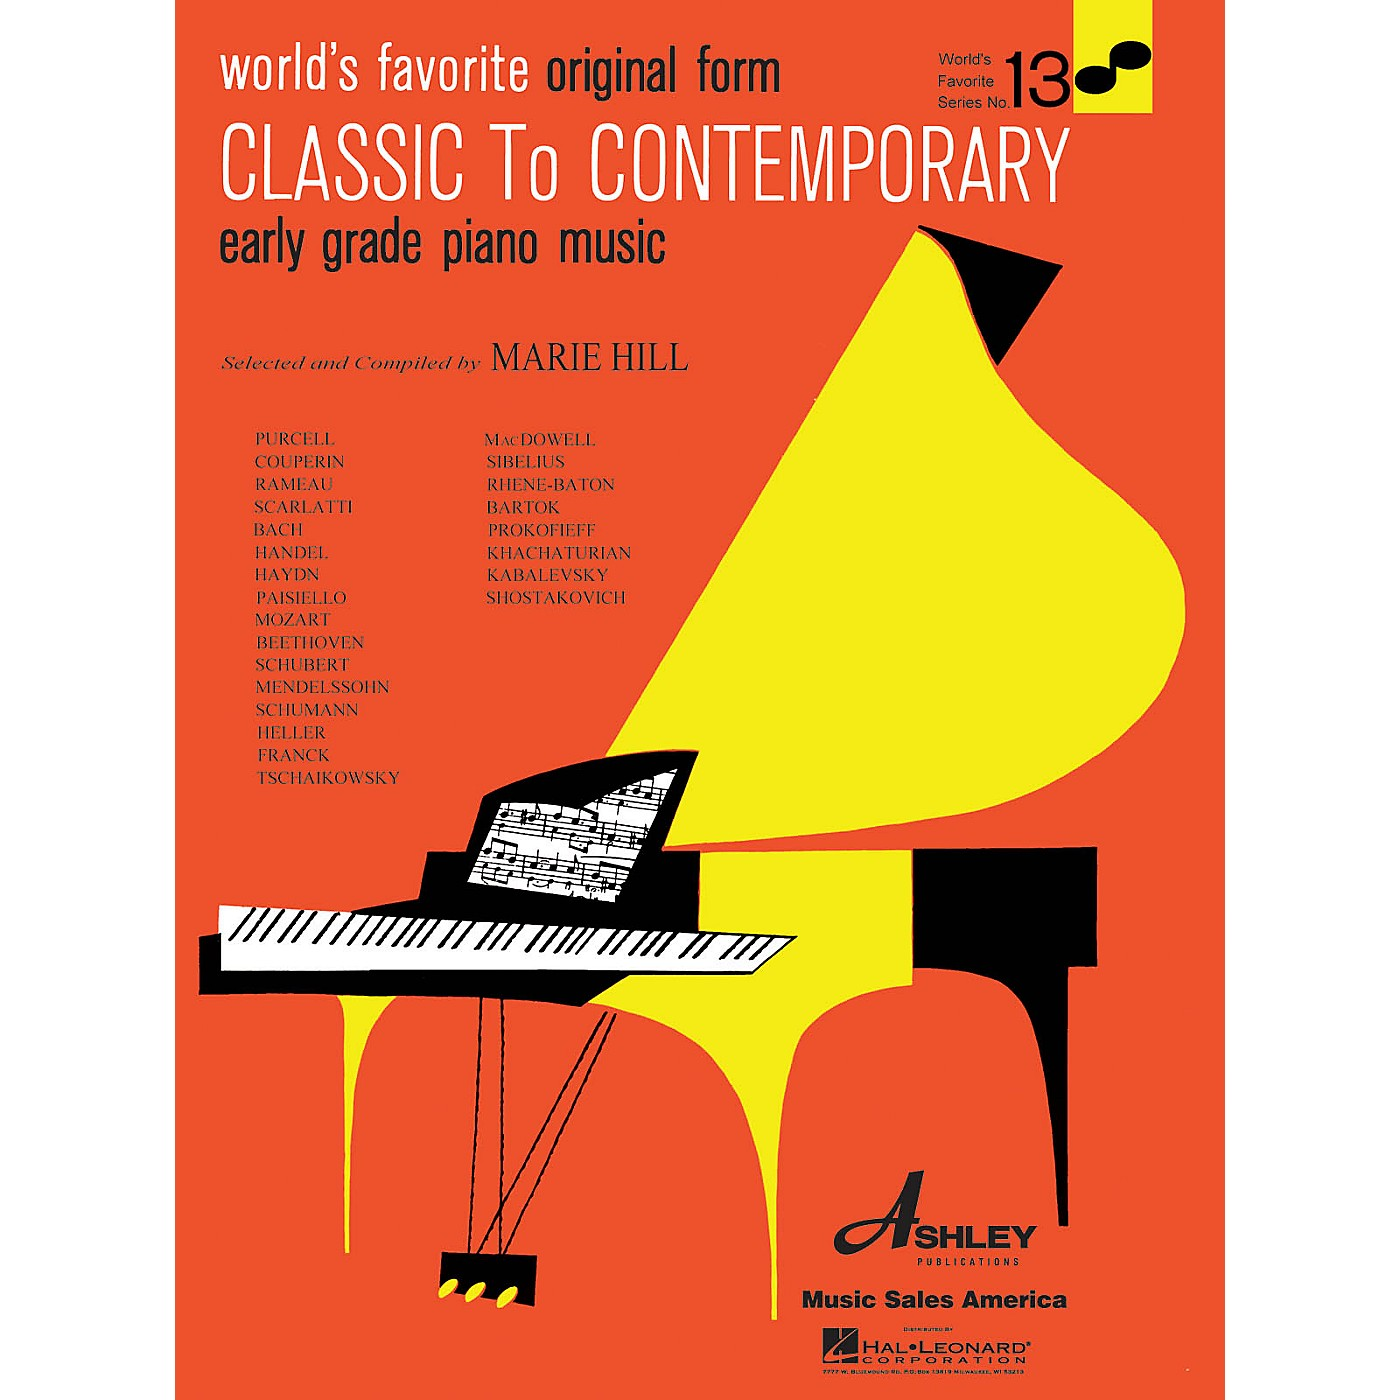 Ashley Publications Inc. Classical to Contemporary Piano Music World's Favorite (Ashley) Series Softcover thumbnail